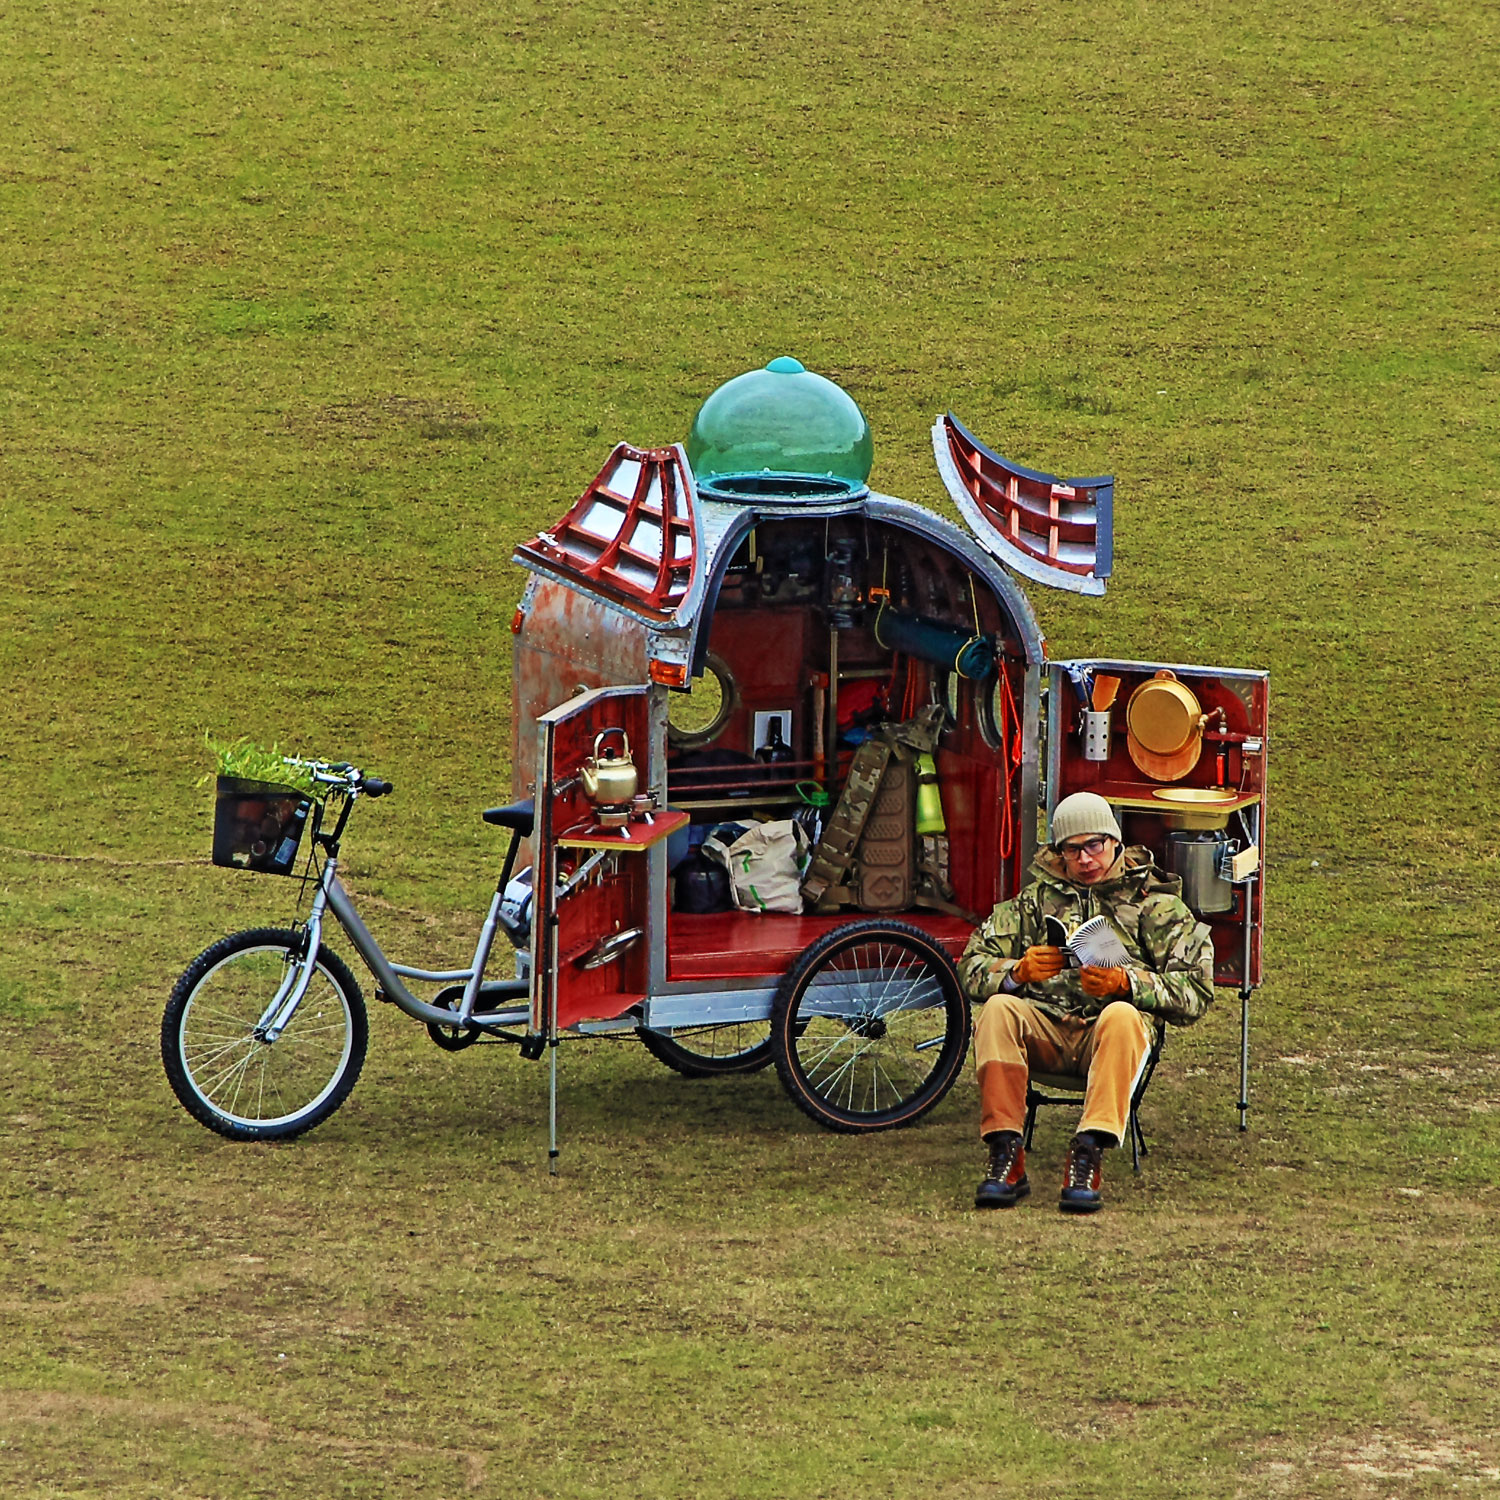 Wandering Space (Camper Bike) 流浪太空號 (露營車)